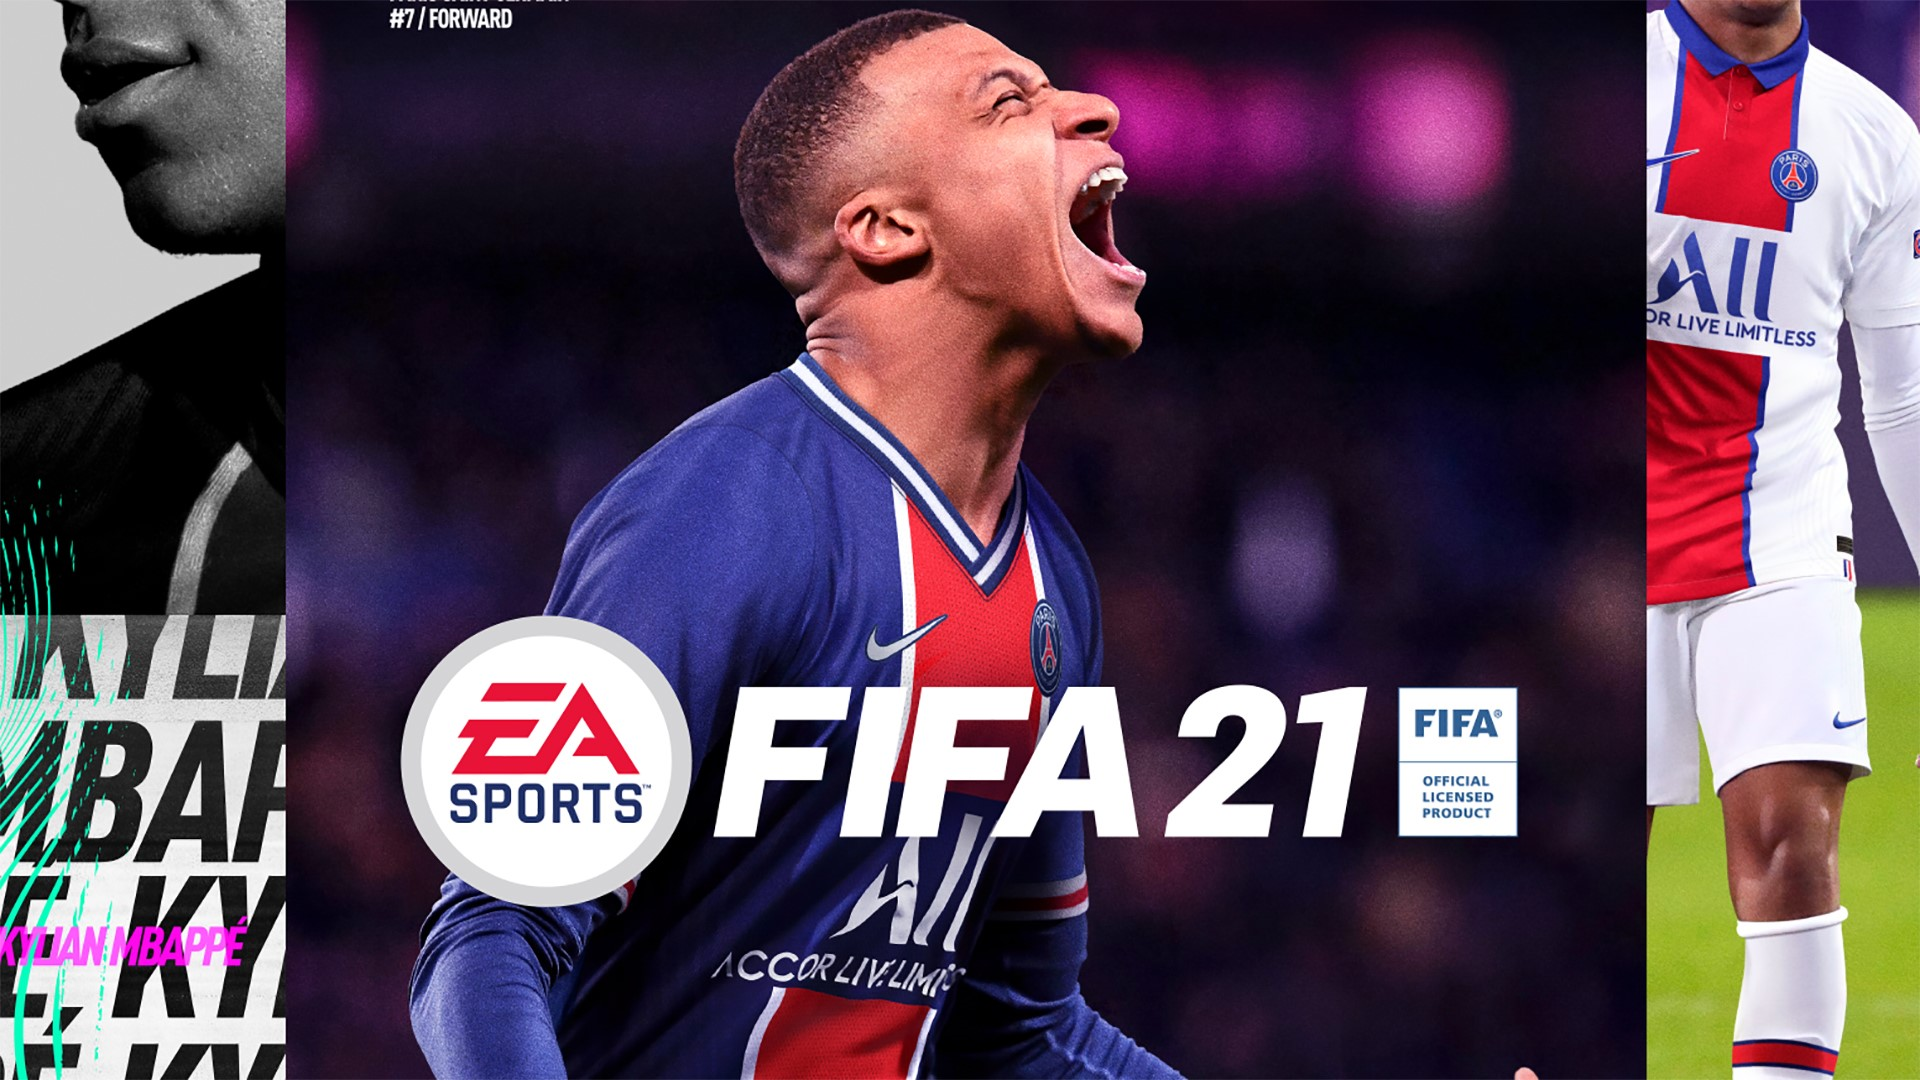 FIFA 21+ACCOUNT+OFFLINE+GLOBAL+LICENSE